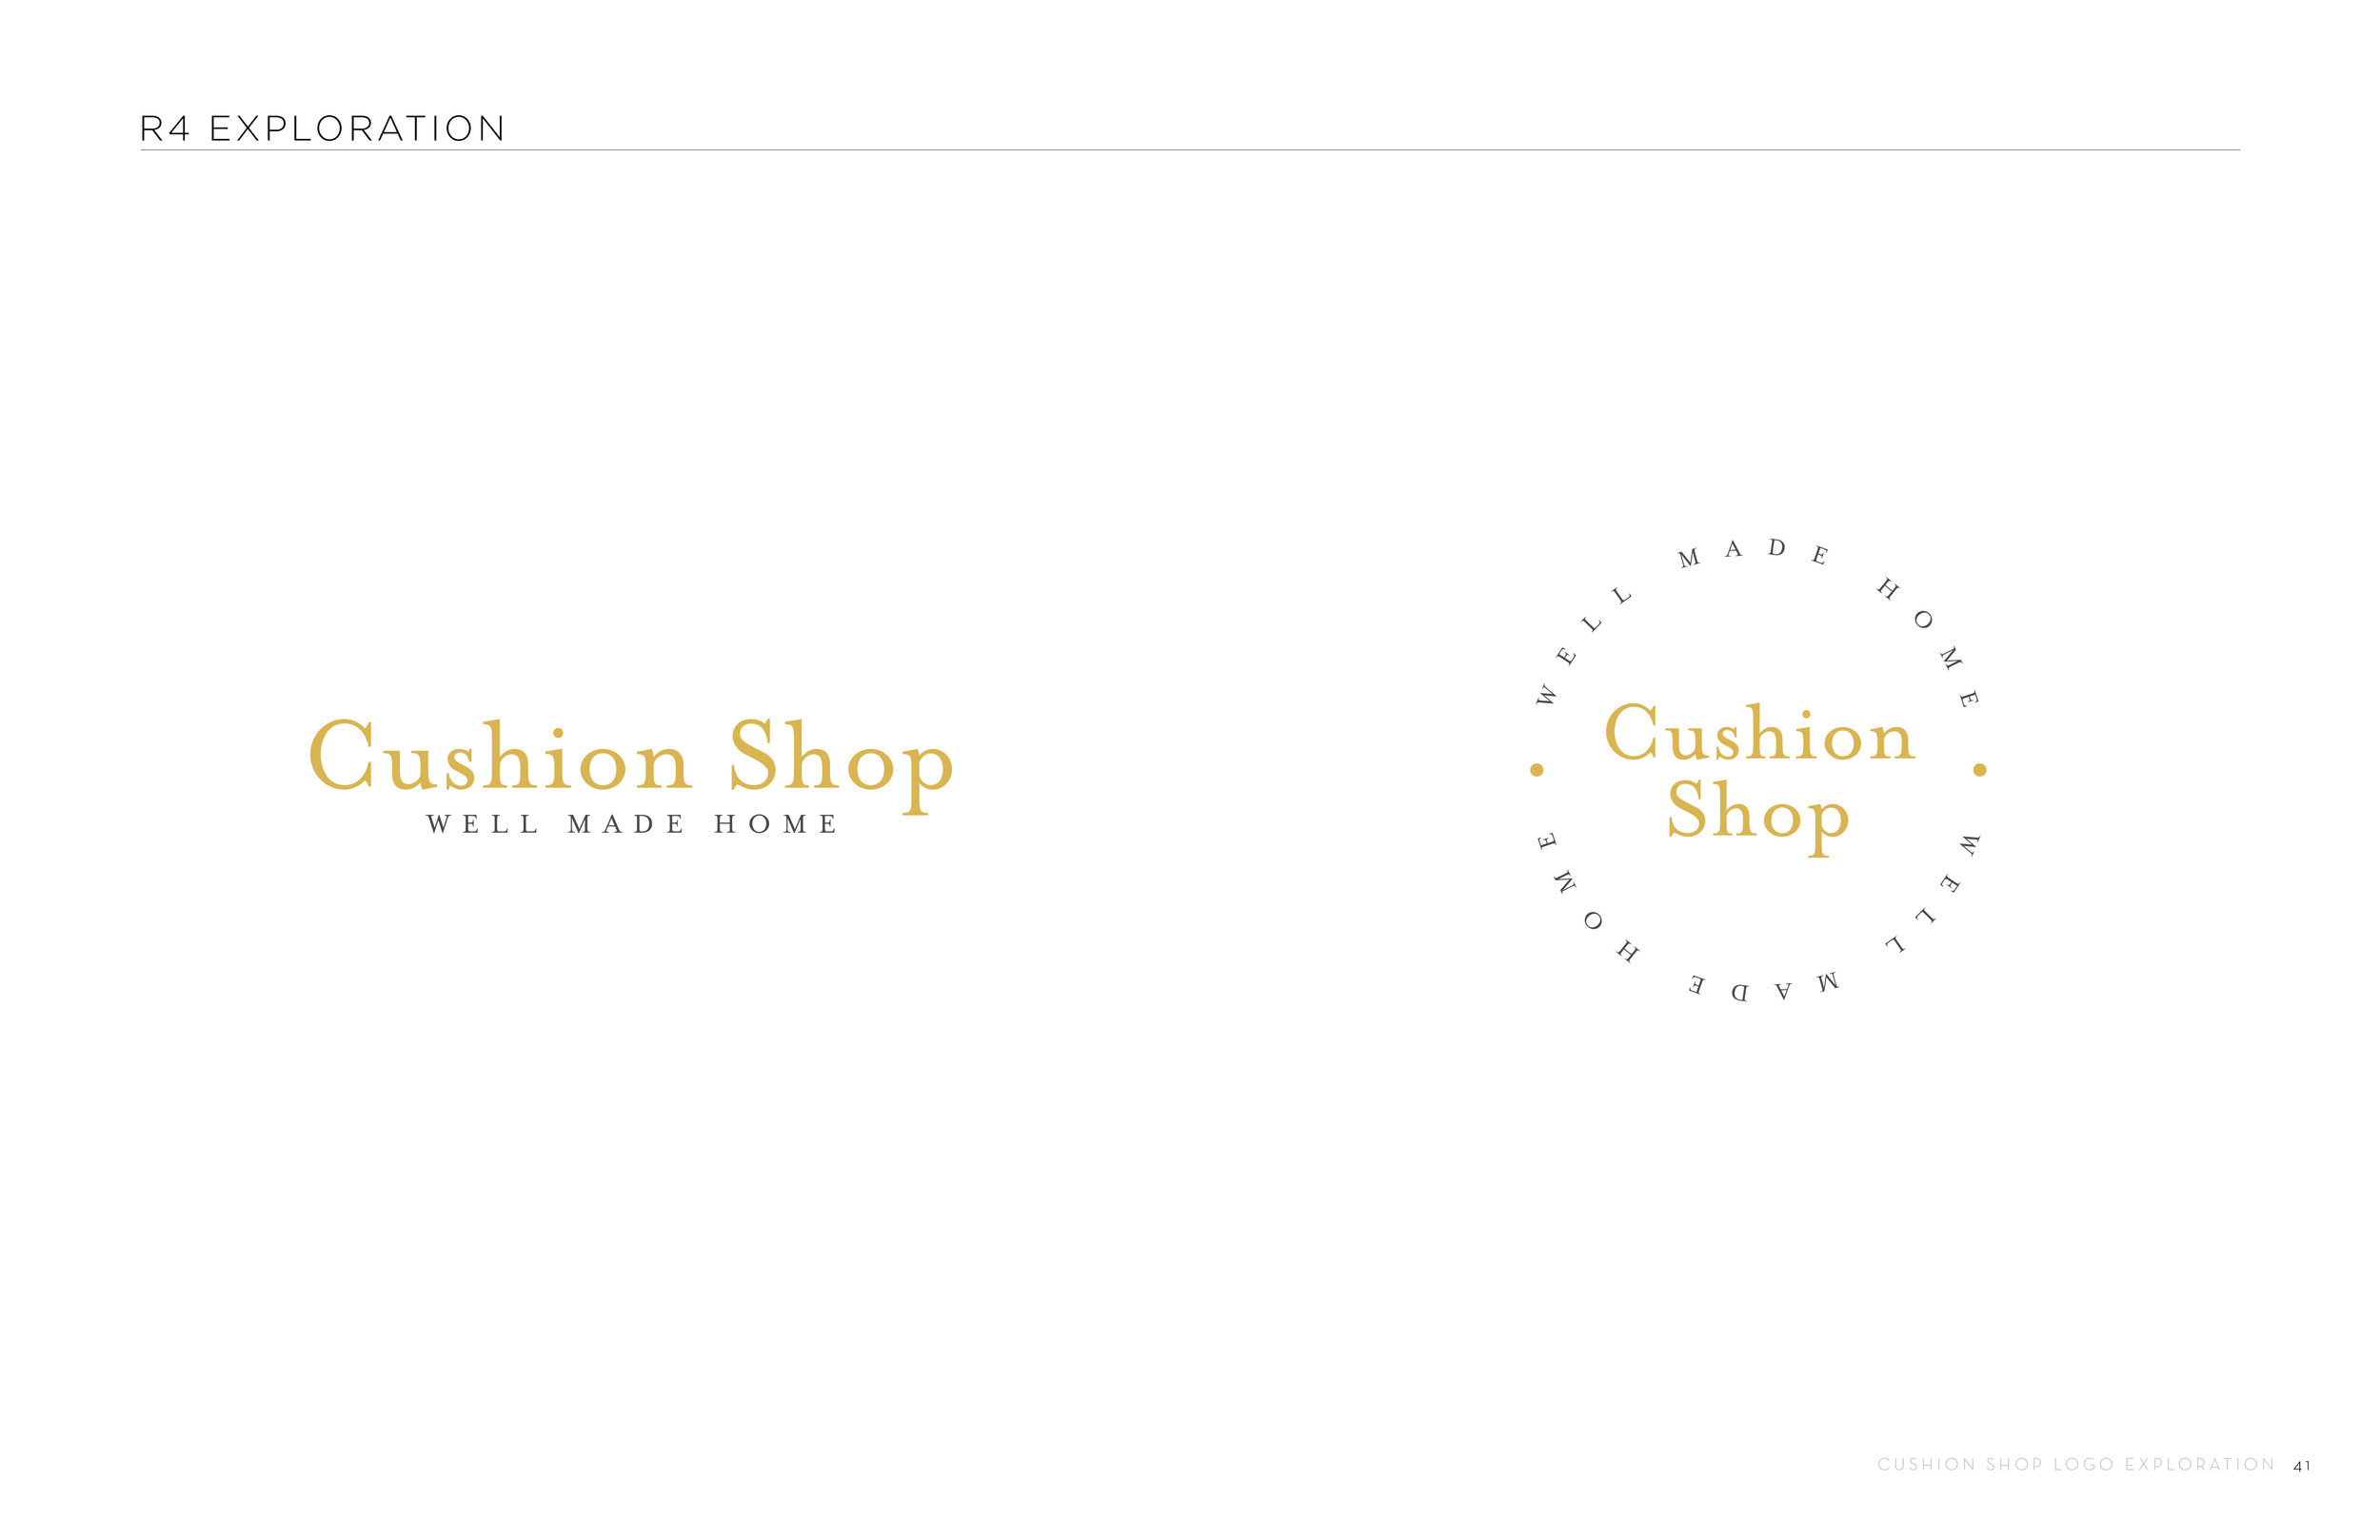 Cushion Shop_Logo Concepts_R10_41.jpg